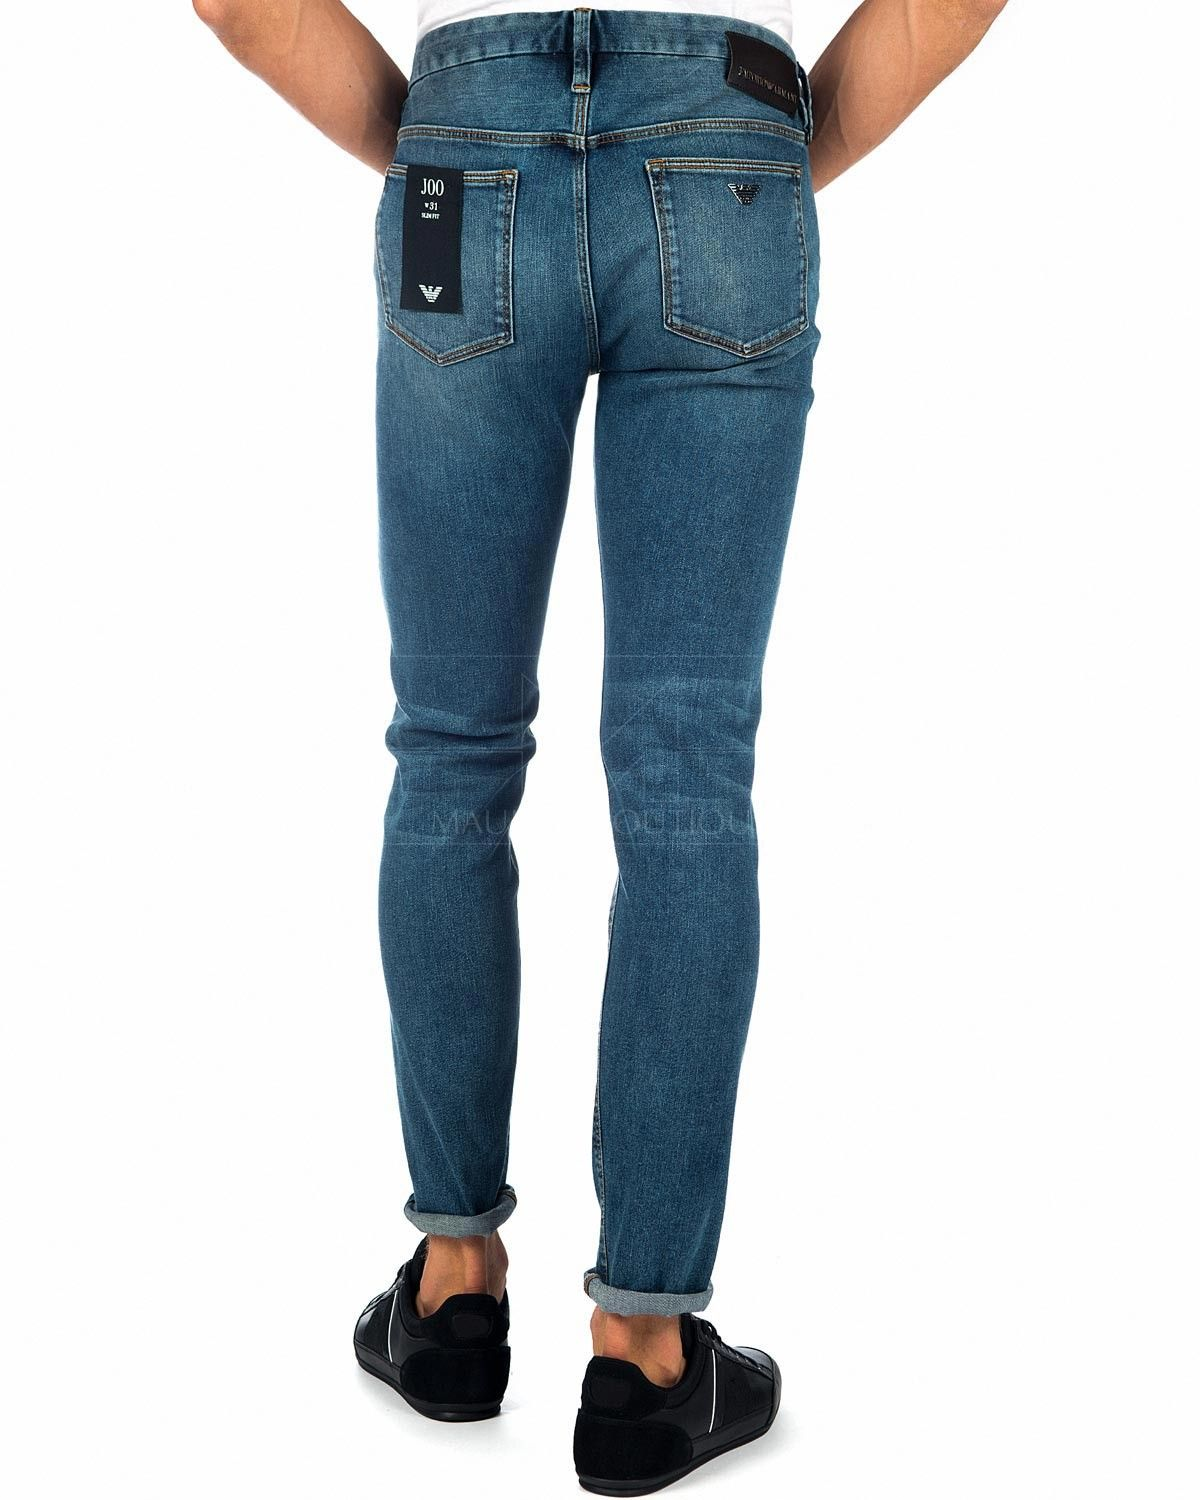 979b801d3 Emporio Armani Jeans J00 Slim Fit - 1DGCZ | clothing and outfits ...